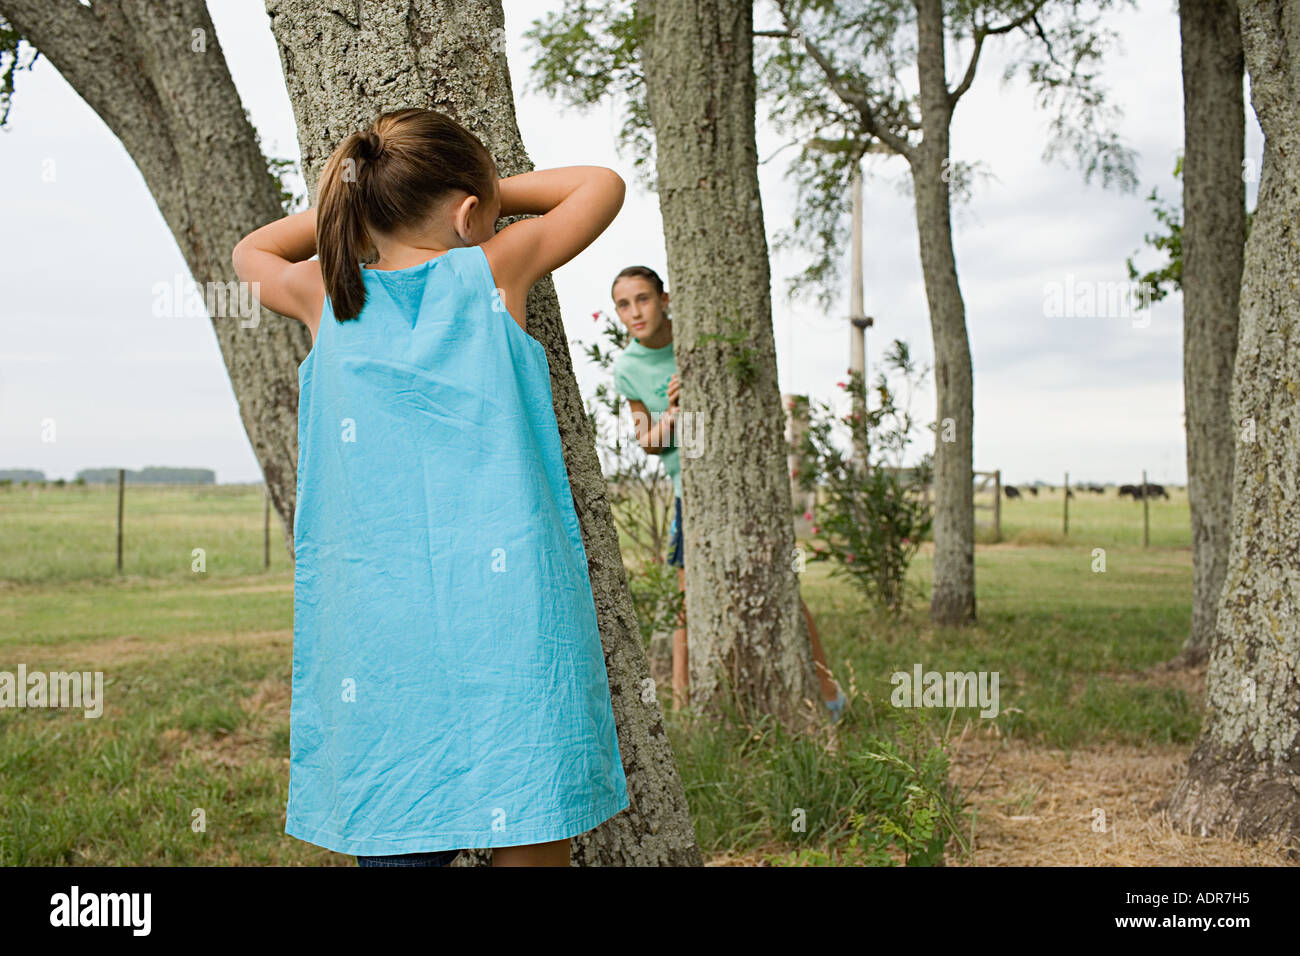 Girls playing hide and seek Stock Photo